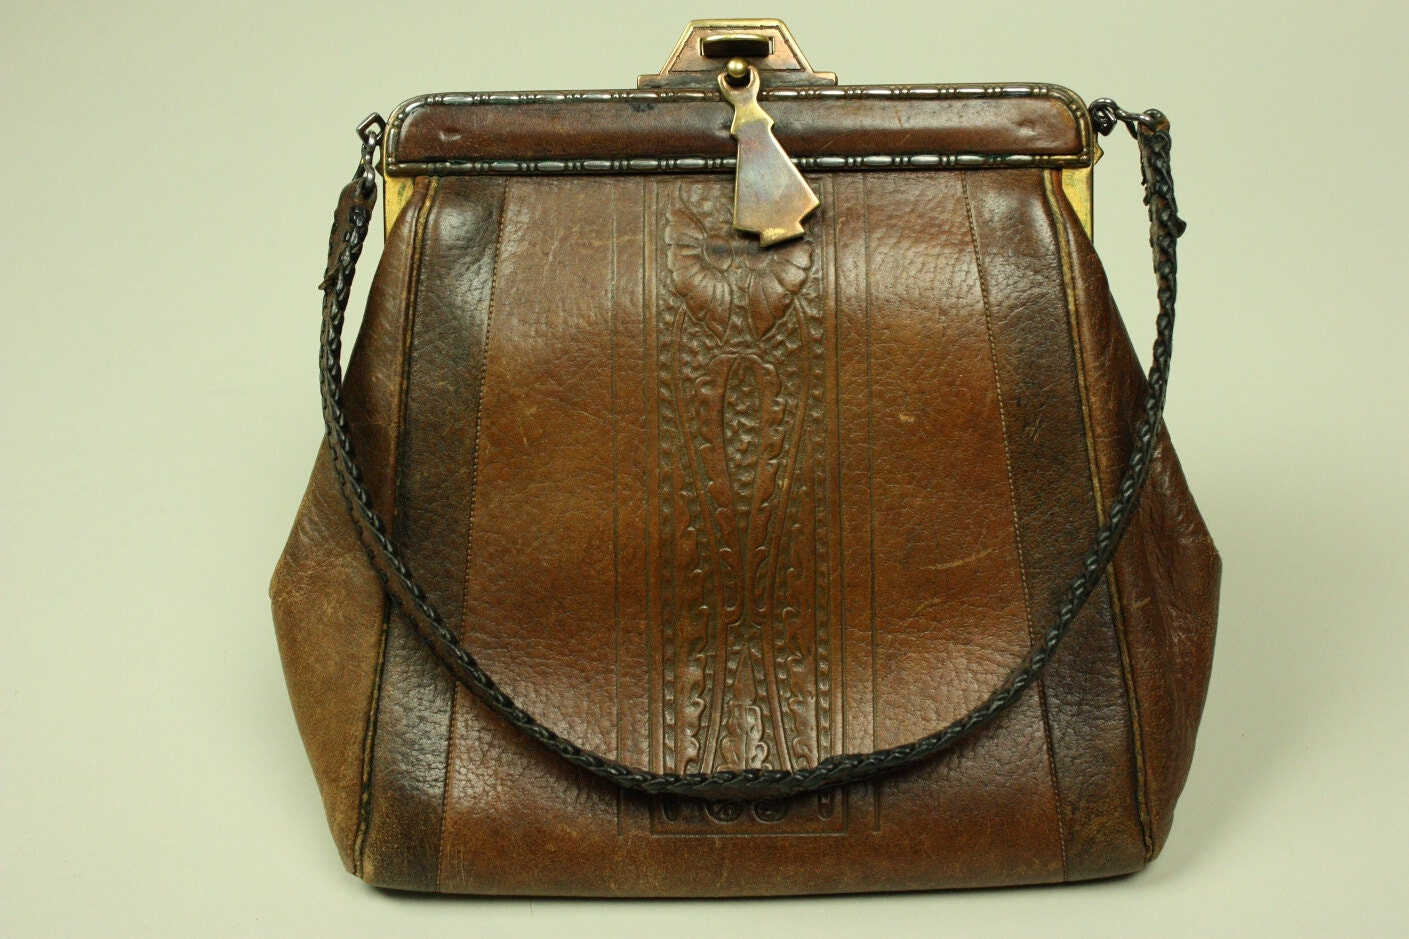 Vintage arts crafts handbag 1920s 1930s brown tooled leather for Arts and crafts tote bags